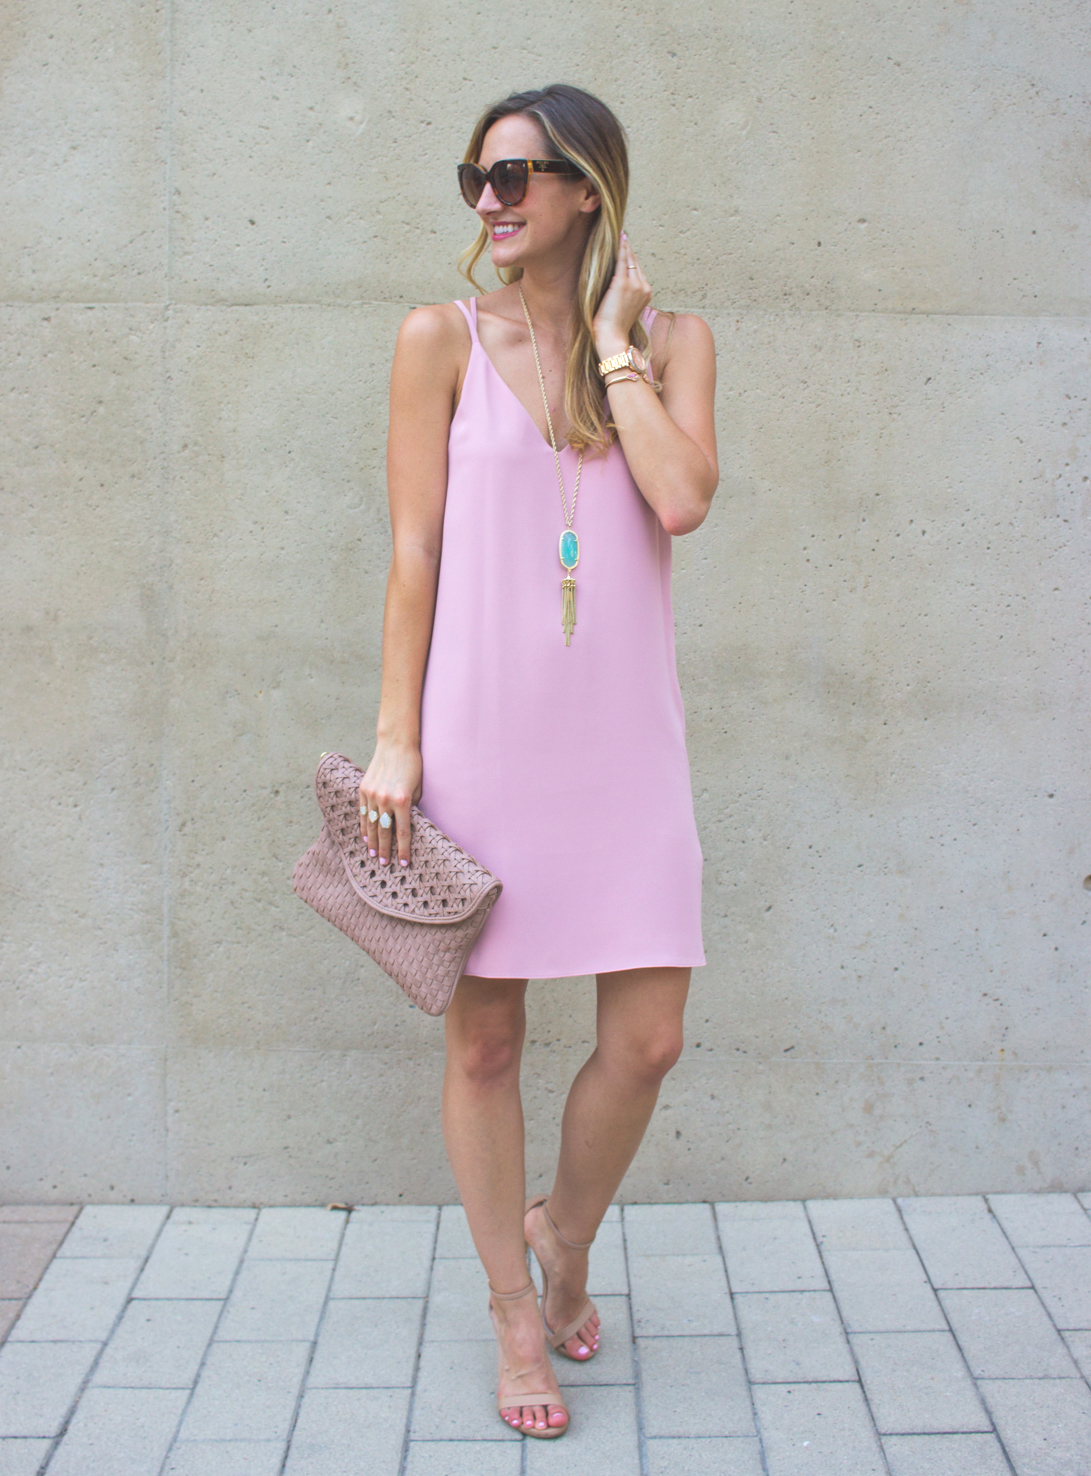 livvyland-blog-olivia-watson-date-night-summer-austin-texas-outfit-inspiration-topshop-blush-pink-slip-dress-nordstrom-mens-suit-fashion-blogger-6